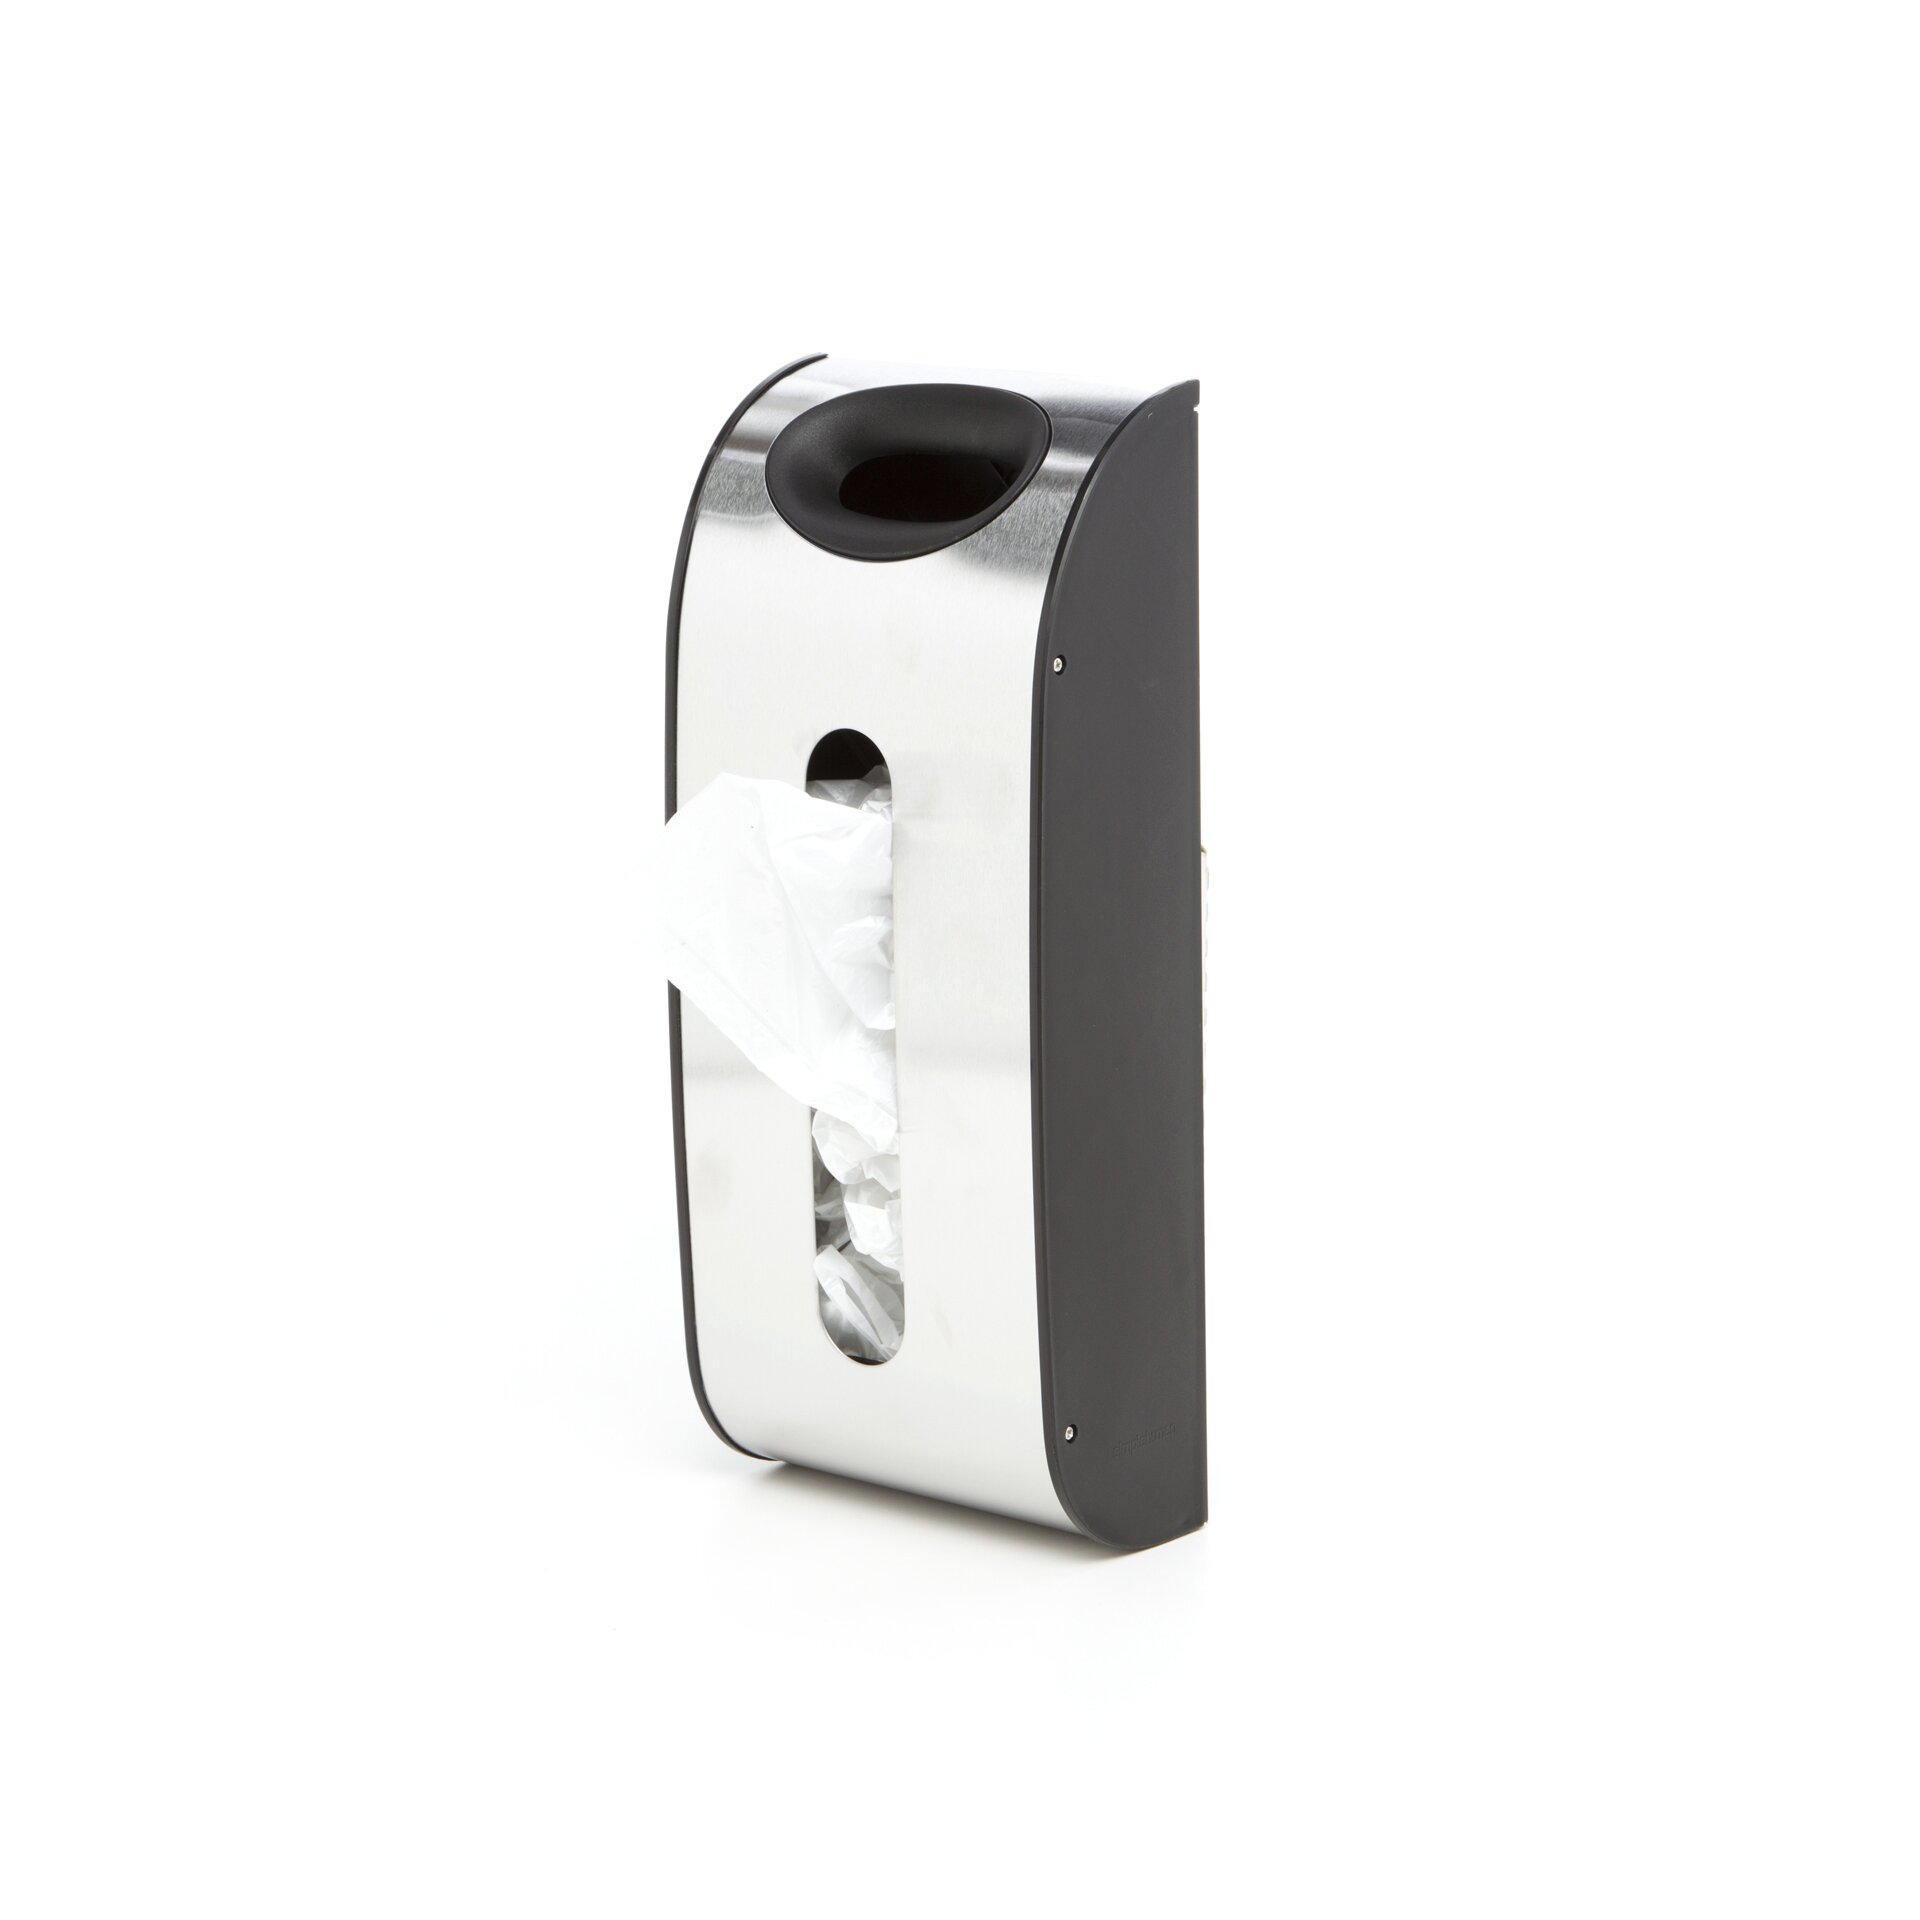 Wall Mounted Dispenser ~ Simplehuman wall mounted grocery bag dispenser in